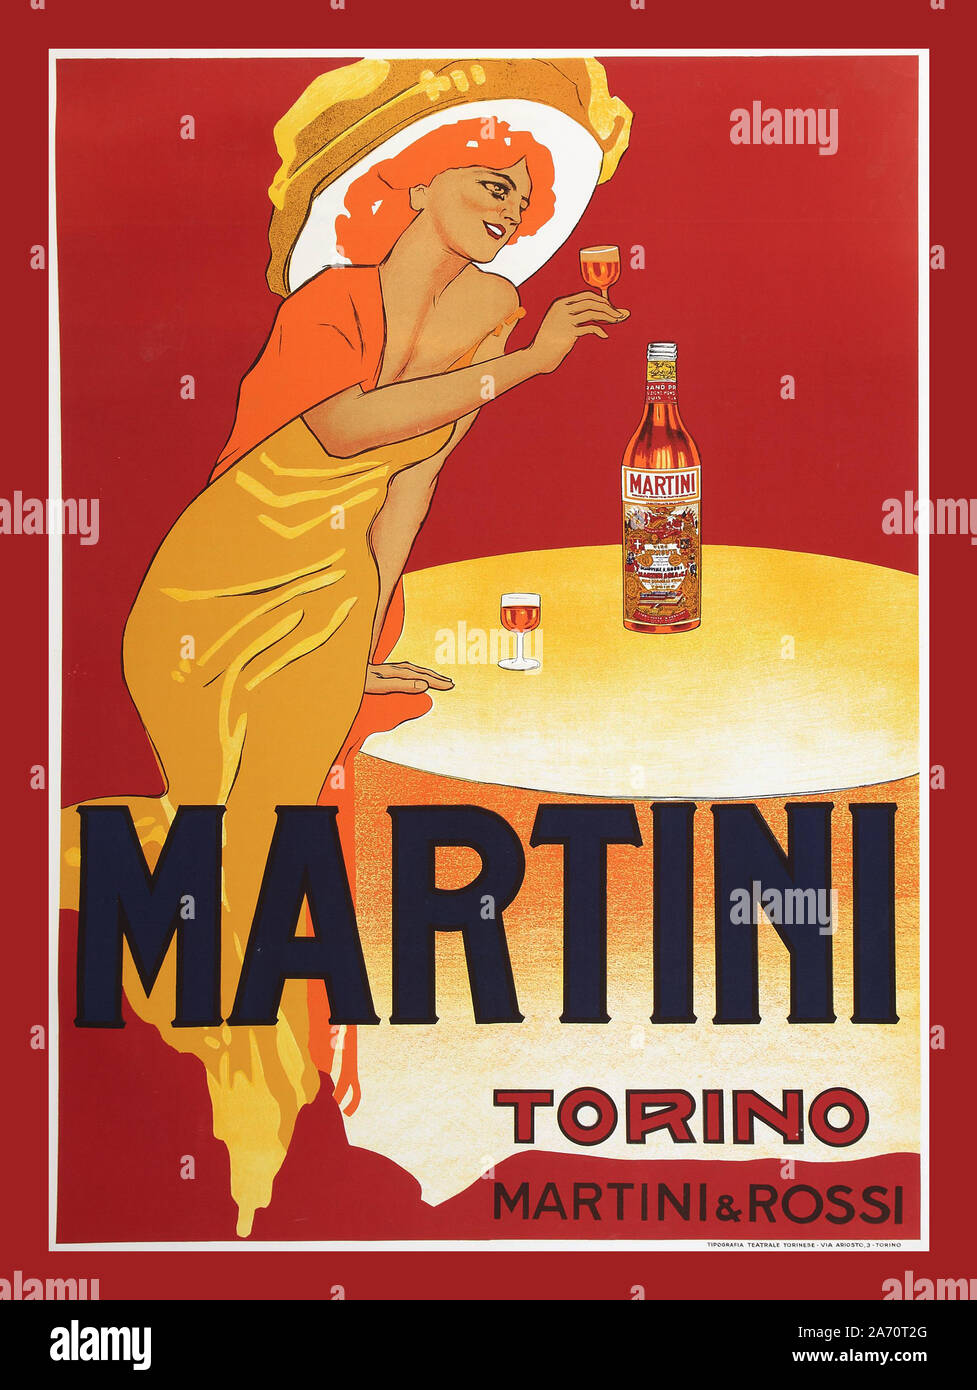 Aperitivo Rossi Martini Vermouth Drink Orange Head Balancing Bottle Italy Vintage Poster Repro FREE Shipping in USA Shipped Rolled-Up